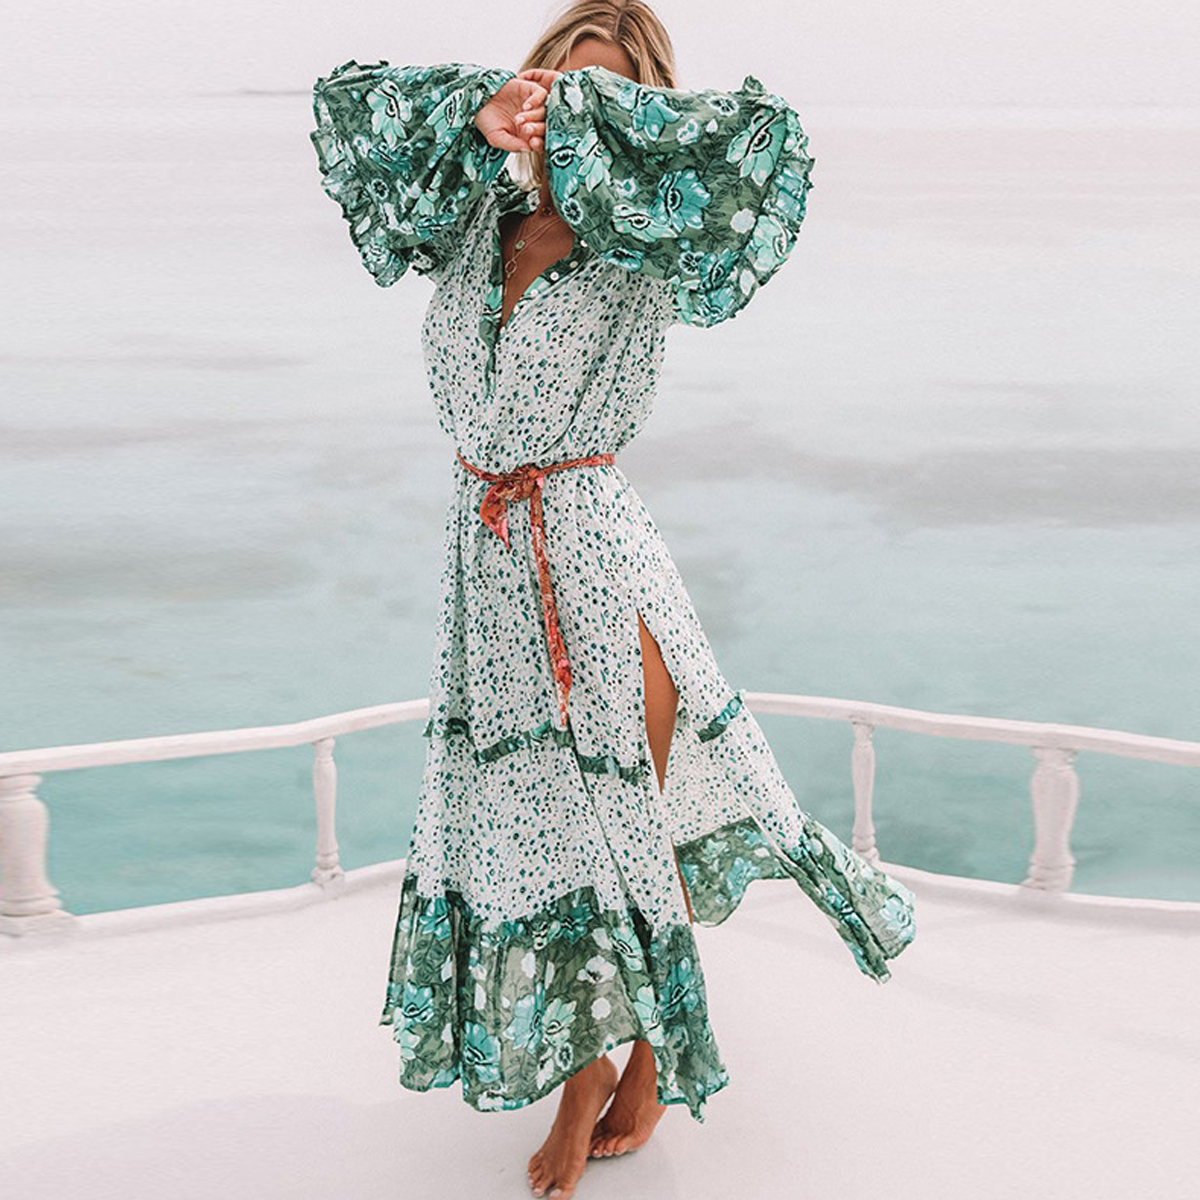 Jastie V-Neck Long Sleeve Midi Dress Green Floral Print Women Dresses High Side Slits Boho Hippie Beach Dress Vestidos 2018